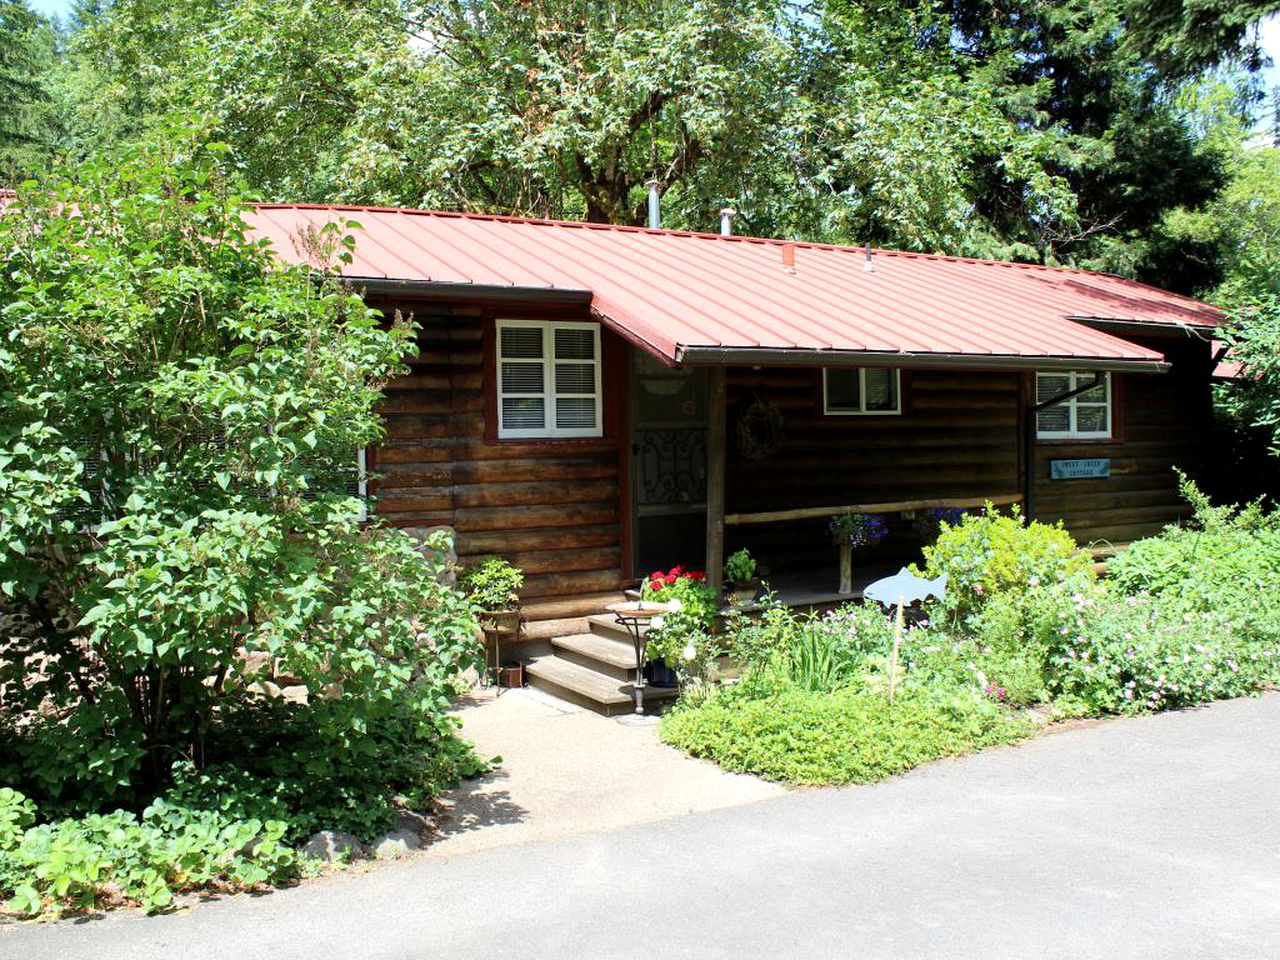 Cabins (Molalla, Oregon, United States)